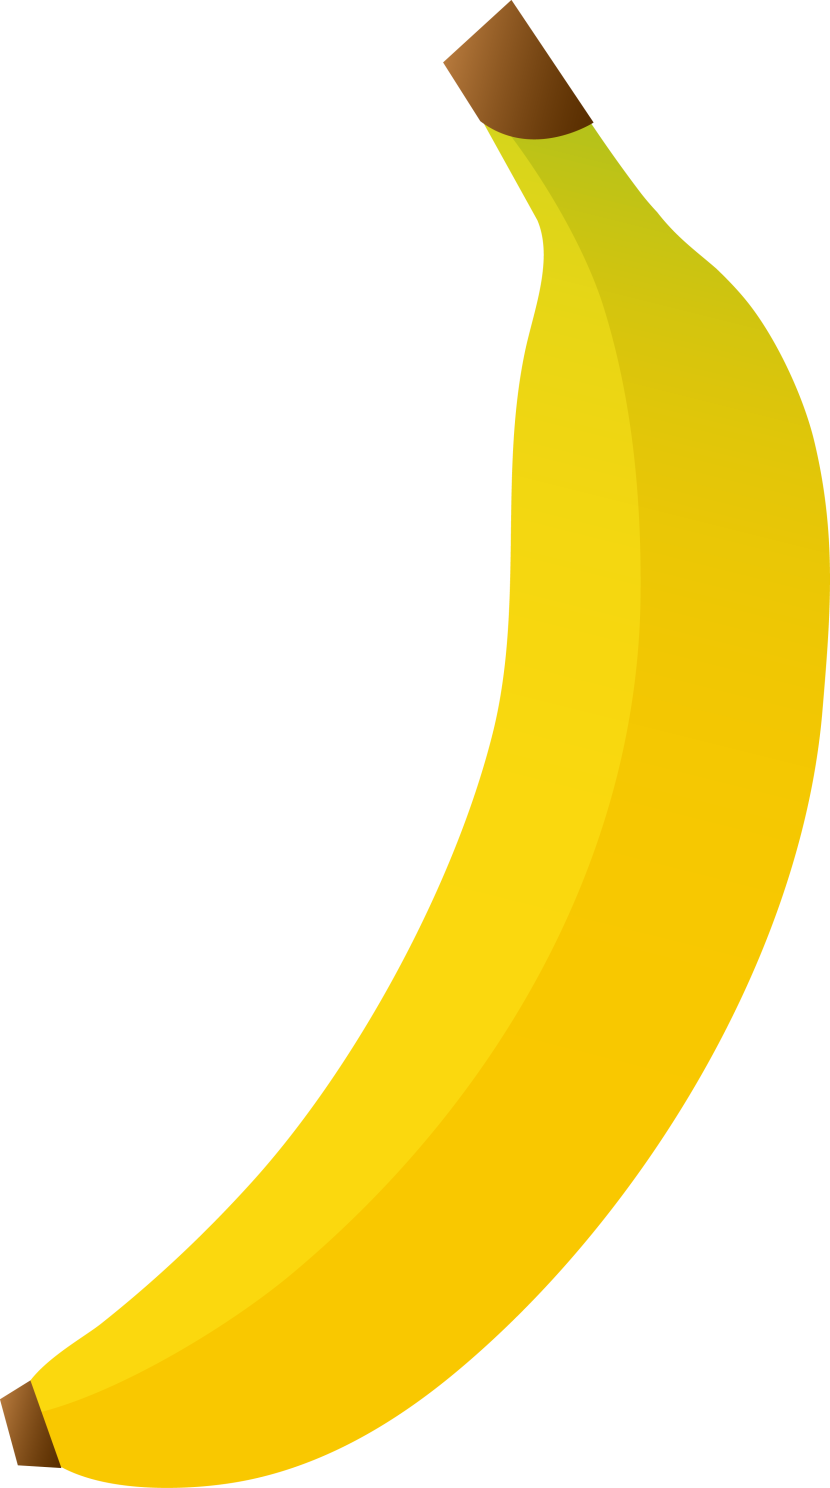 Banana Png Image Free Picture Downloads Bananas